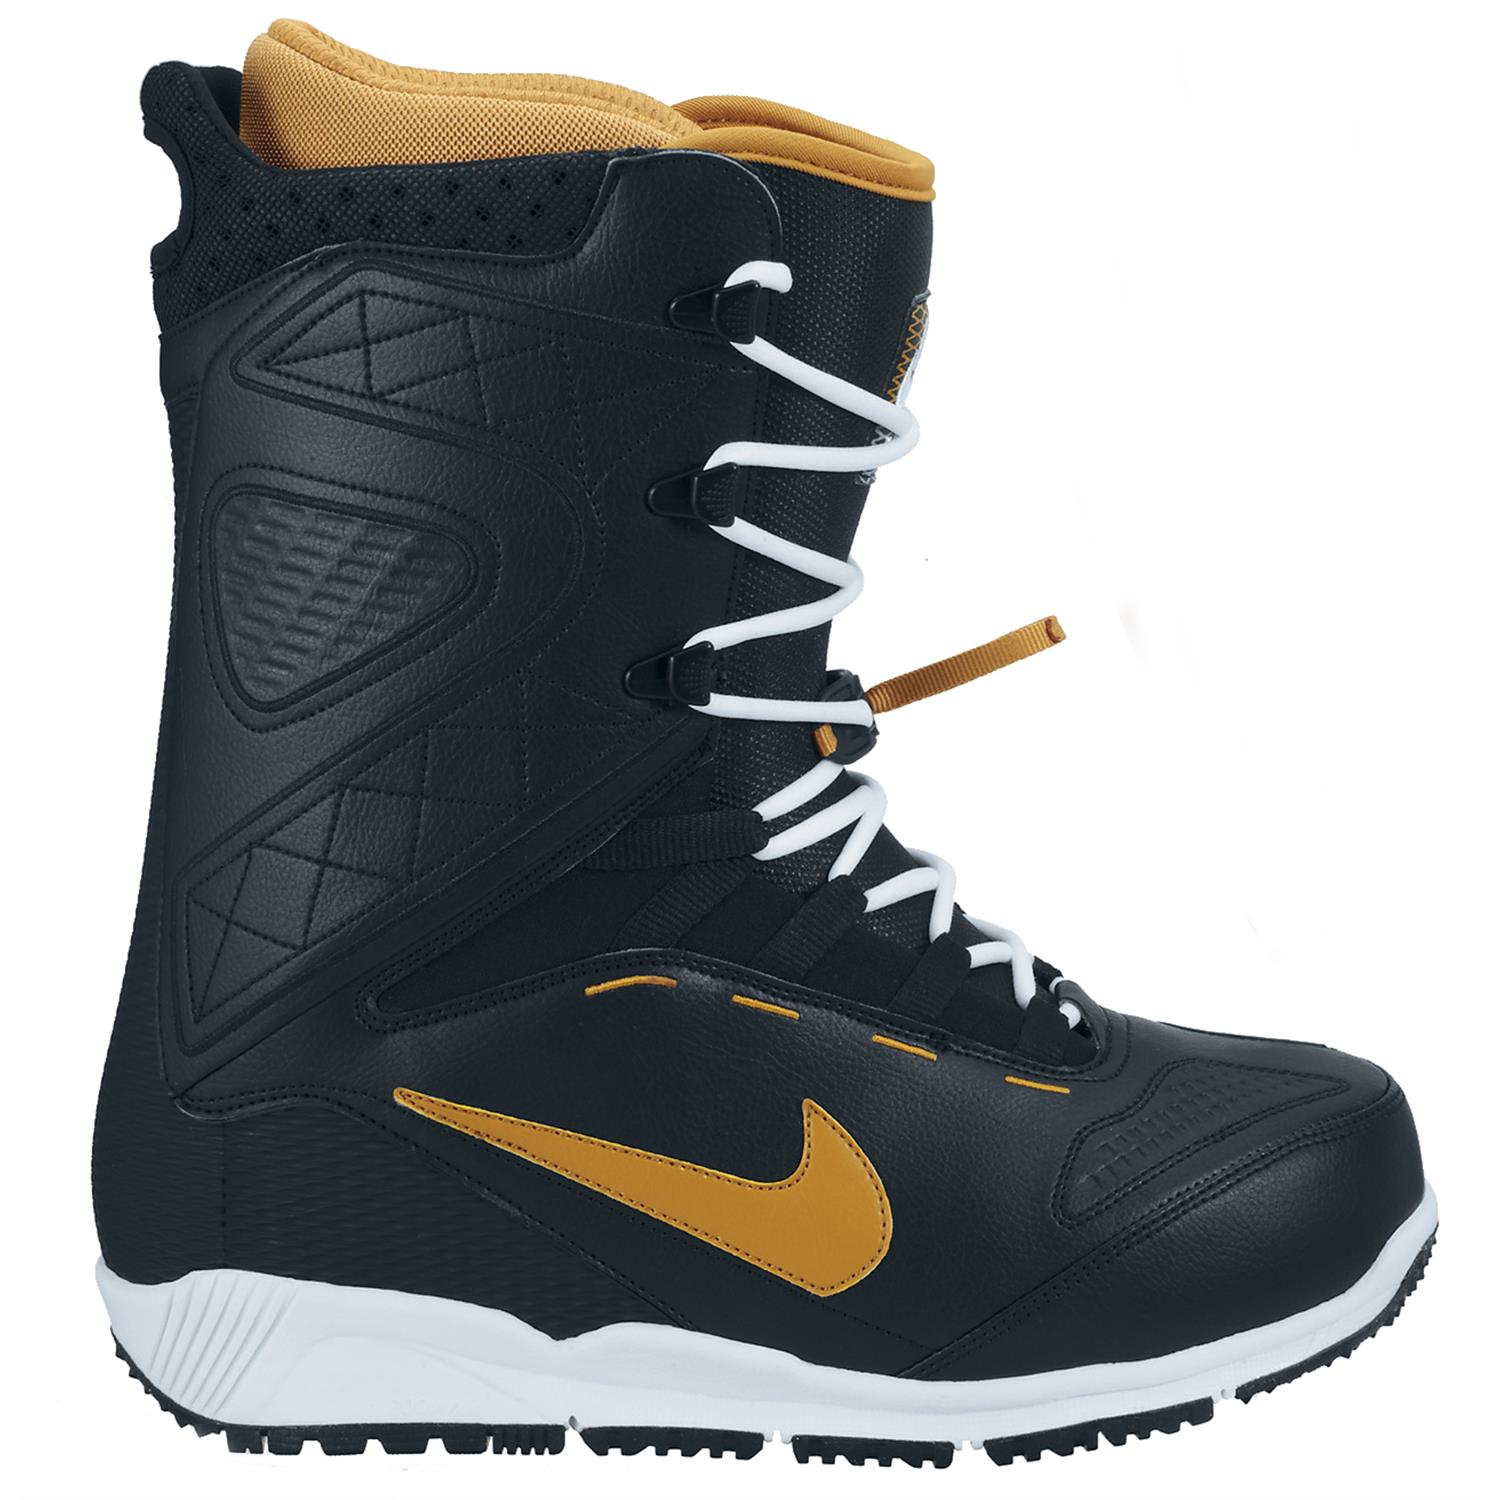 Simple Nike Snowboarding Boots  Blades  Est 1990  New York City